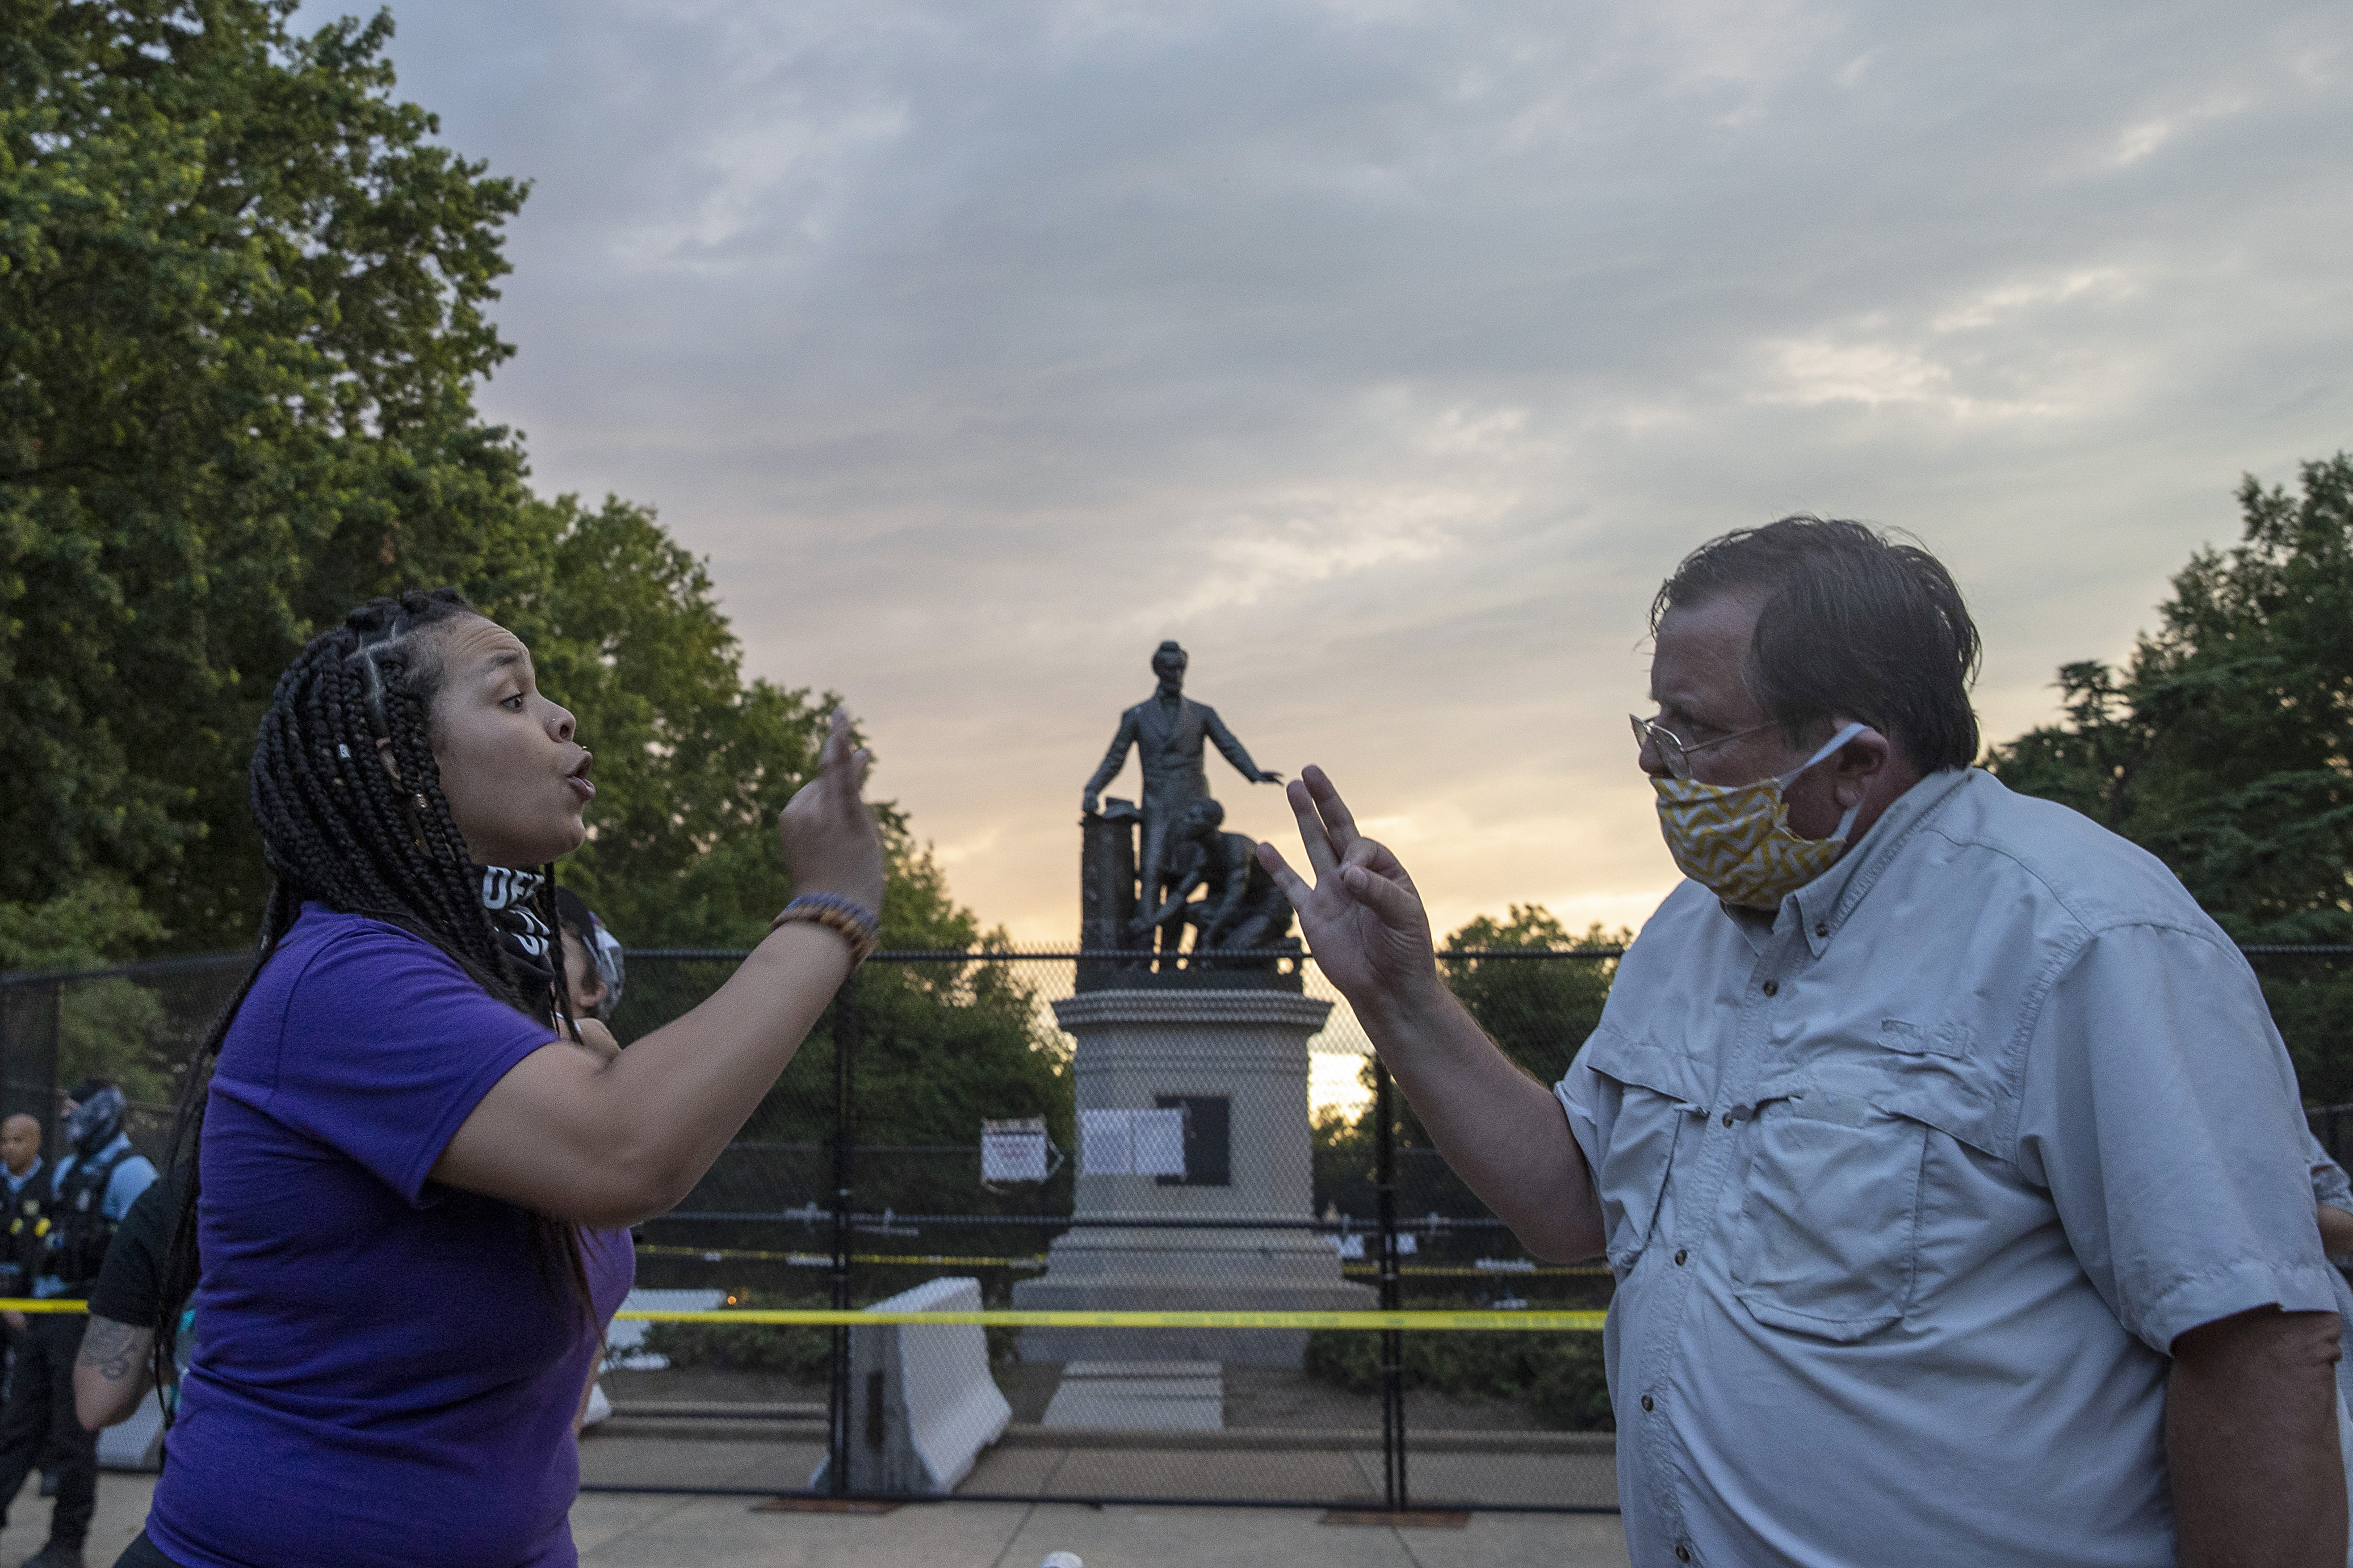 Protesters for and against the removal of the Emancipation Memorial debate in Lincoln Park on June 25, 2020 in Washington, DC. (Photo: Tasos Katopodis/Getty Images)